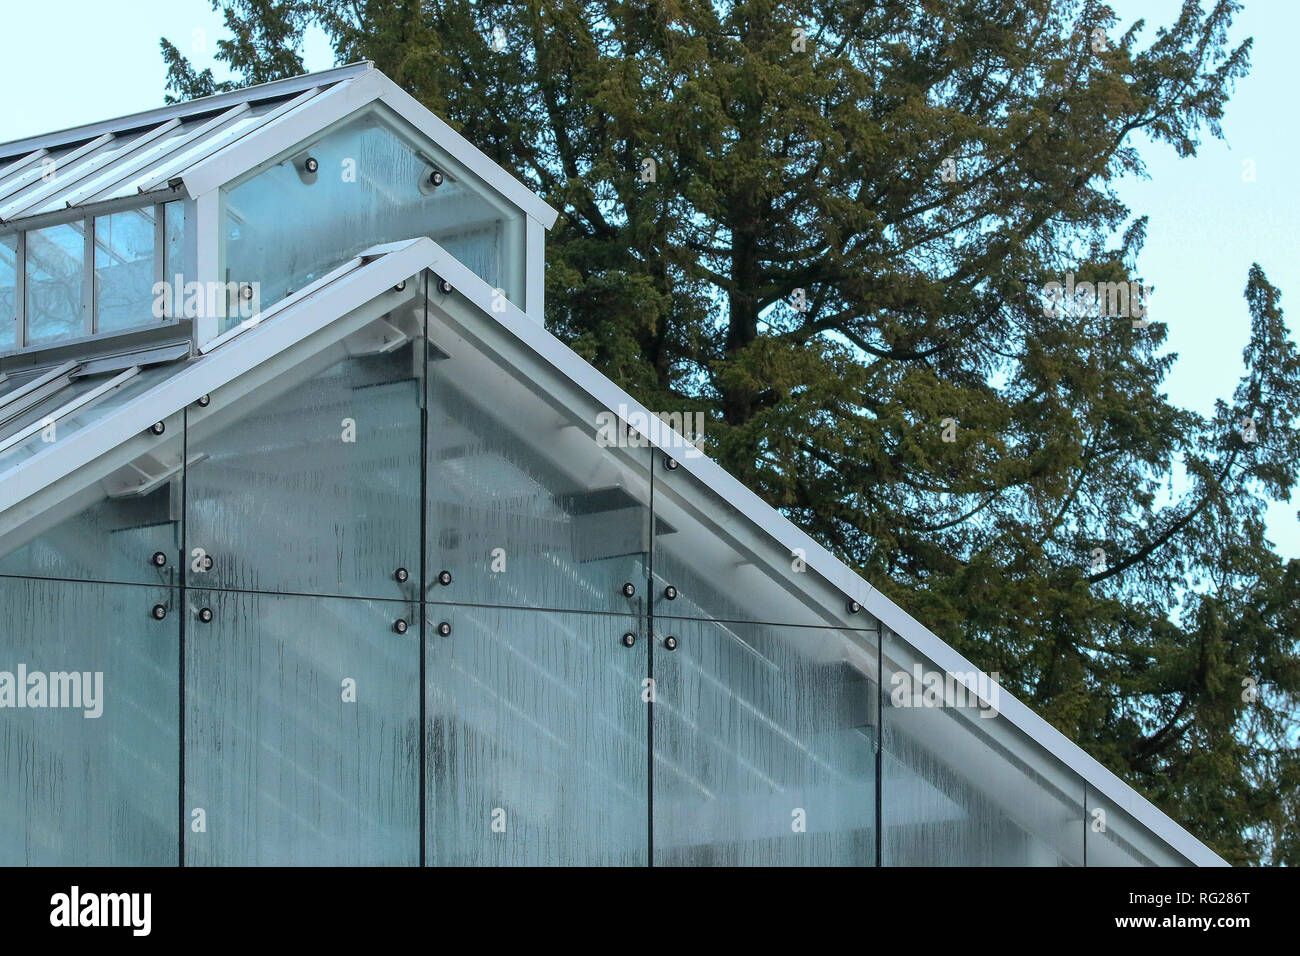 Botanic Gardens, Belfast, Northern Ireland.. 27 January 2019. UK weather - a cold day, 4-5C but feeling much colder in the strong north-westerly breeze. The recently renovated Tropical Ravine was the place to visit for warmth on the cold day. Credit: David Hunter/Alamy Live News. - Stock Image